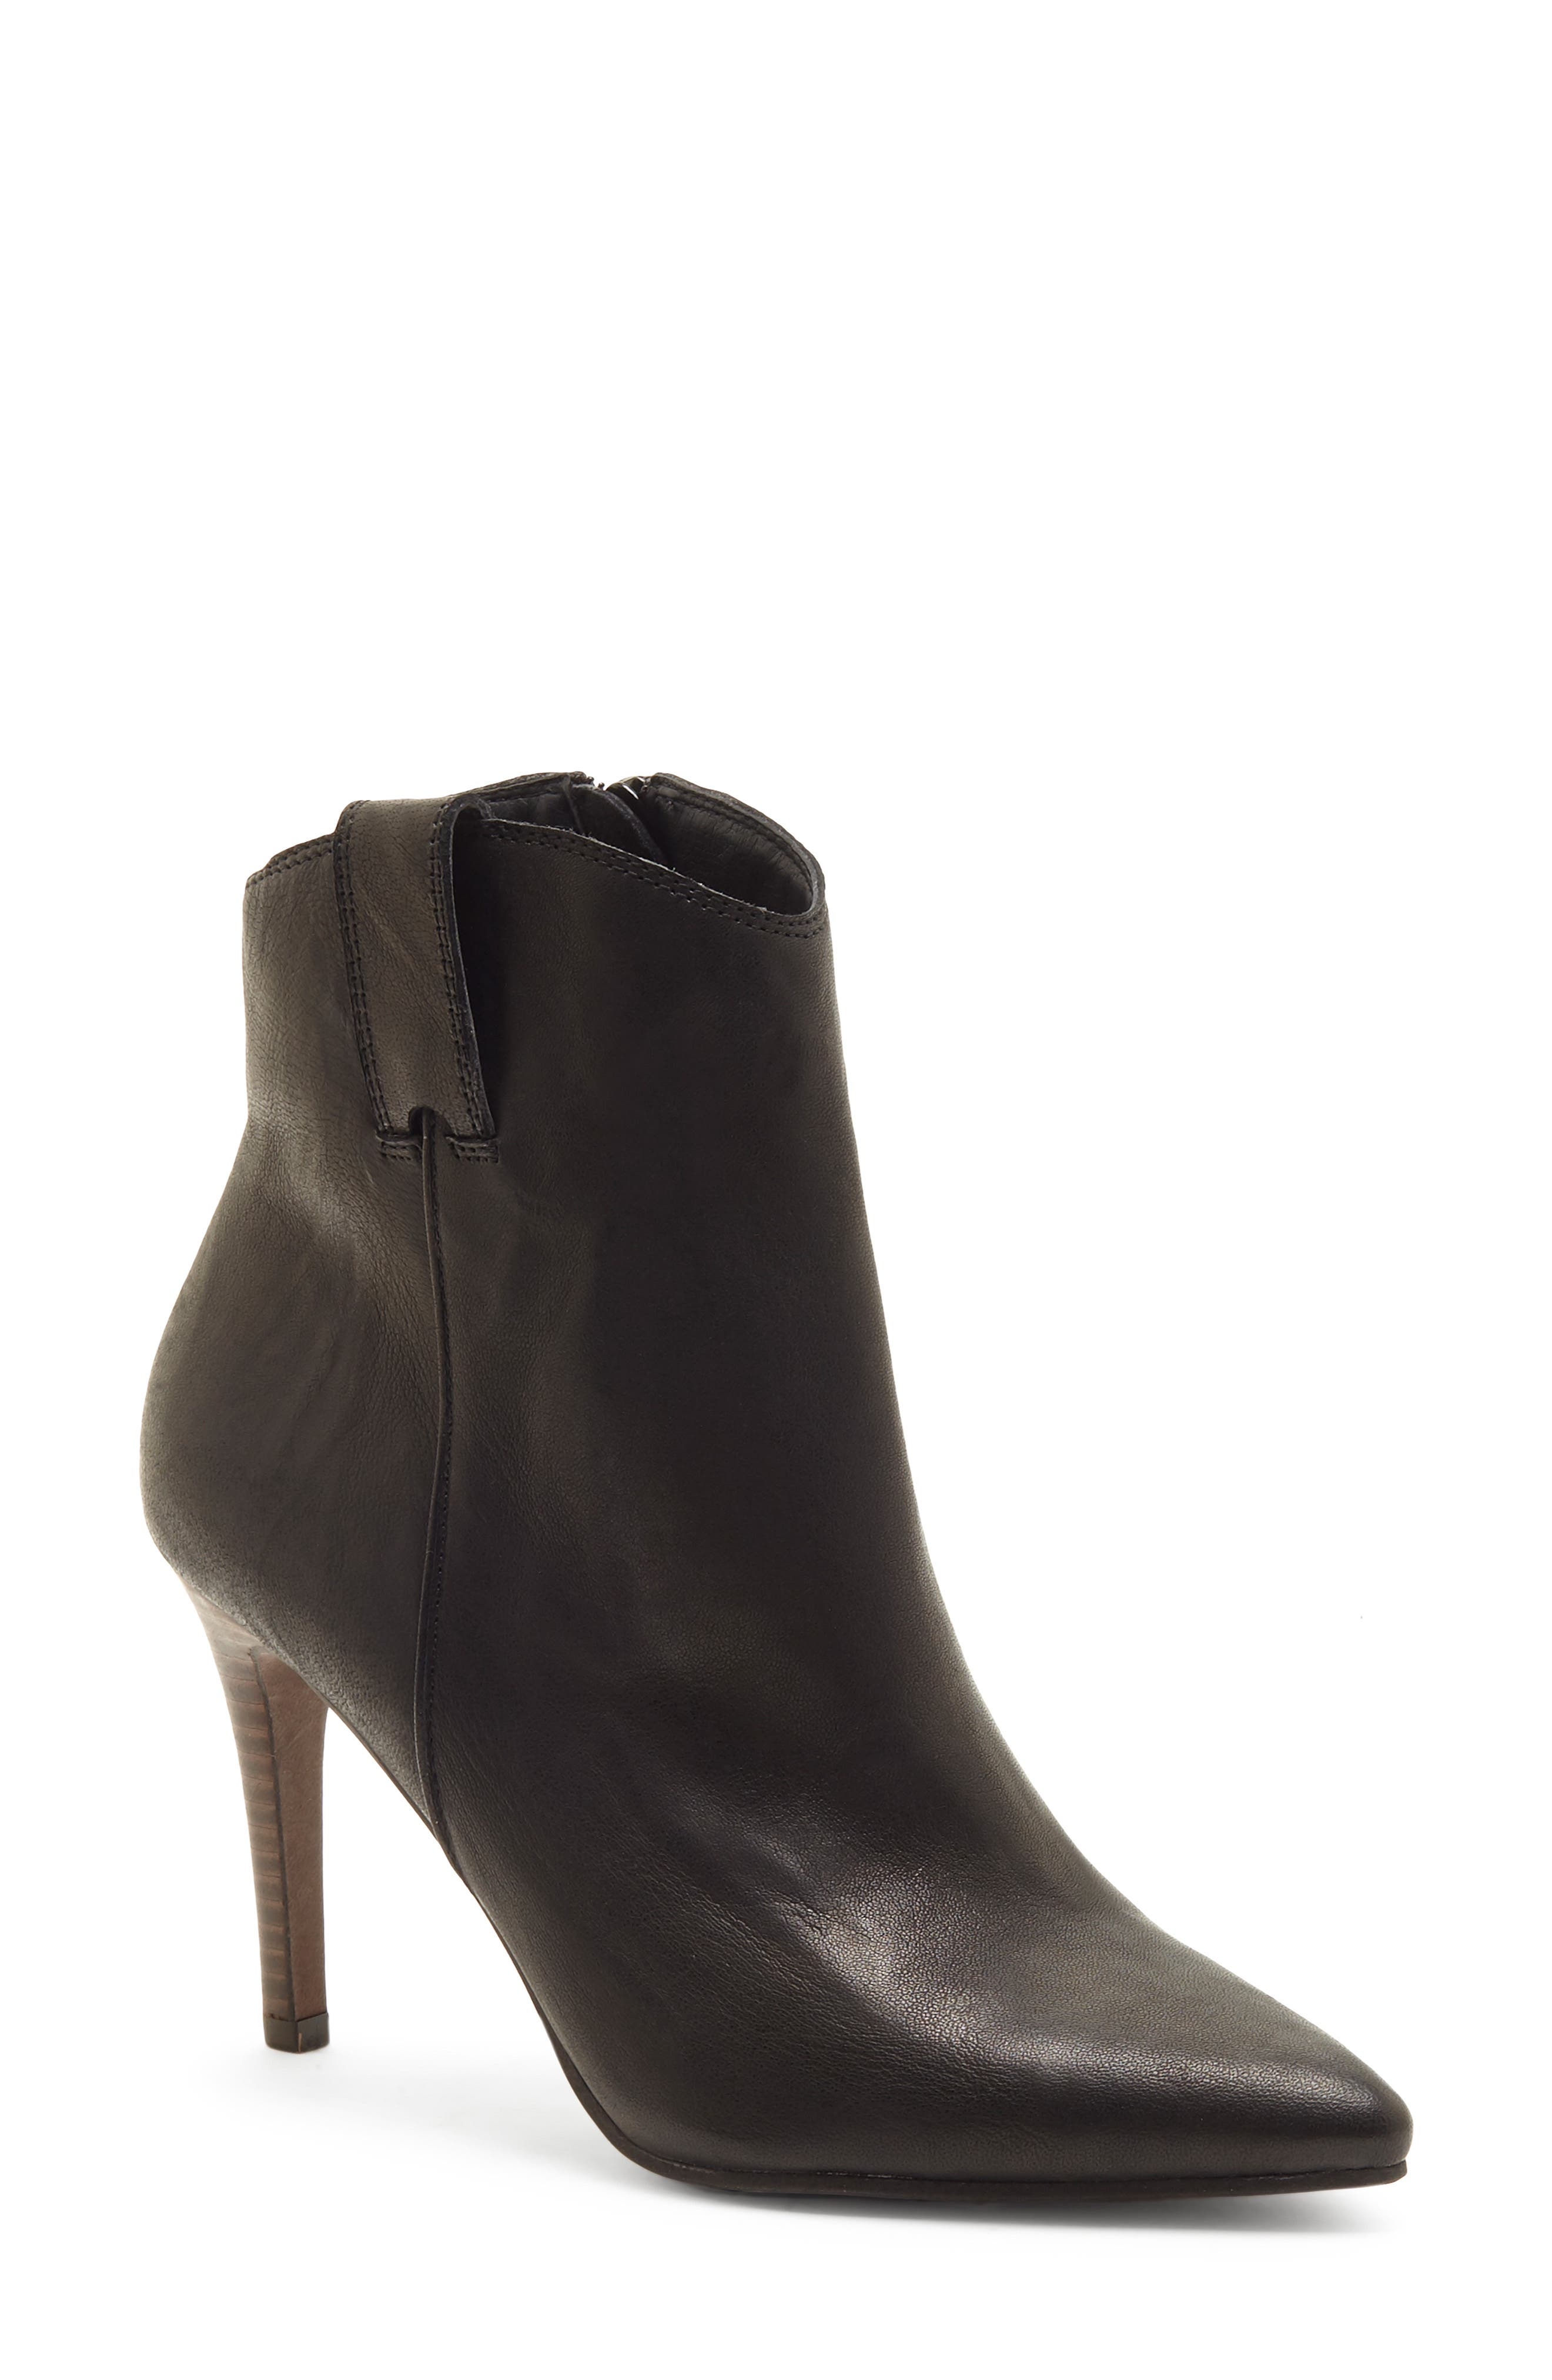 LUCKY BRAND,                             Torince Bootie,                             Main thumbnail 1, color,                             200